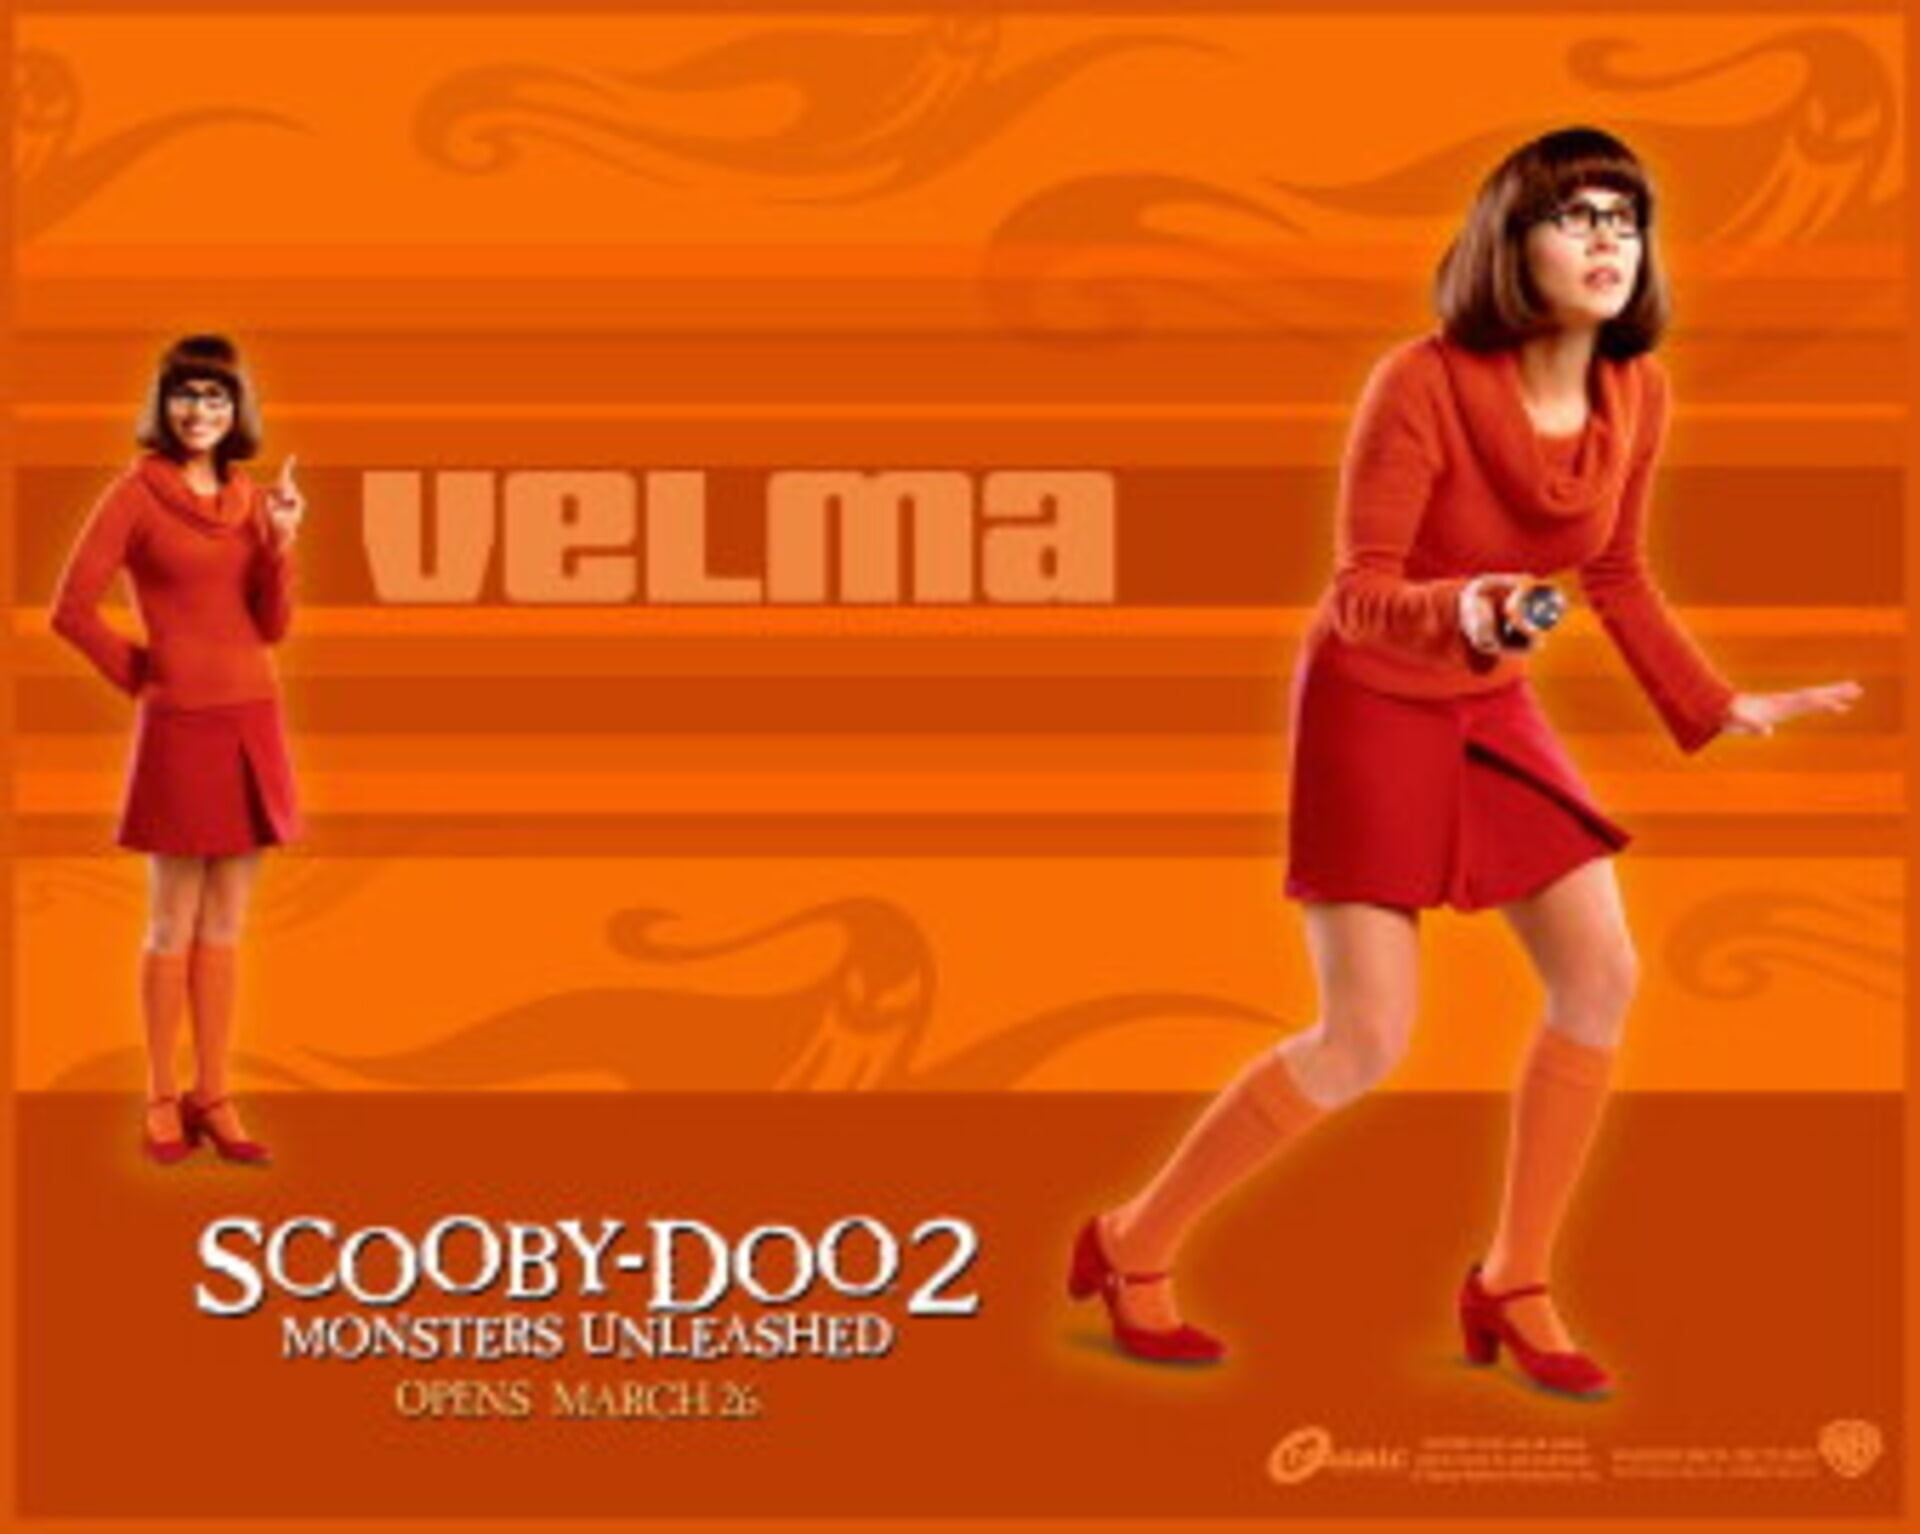 Scooby-doo 2: Monsters Unleashed - Image 13